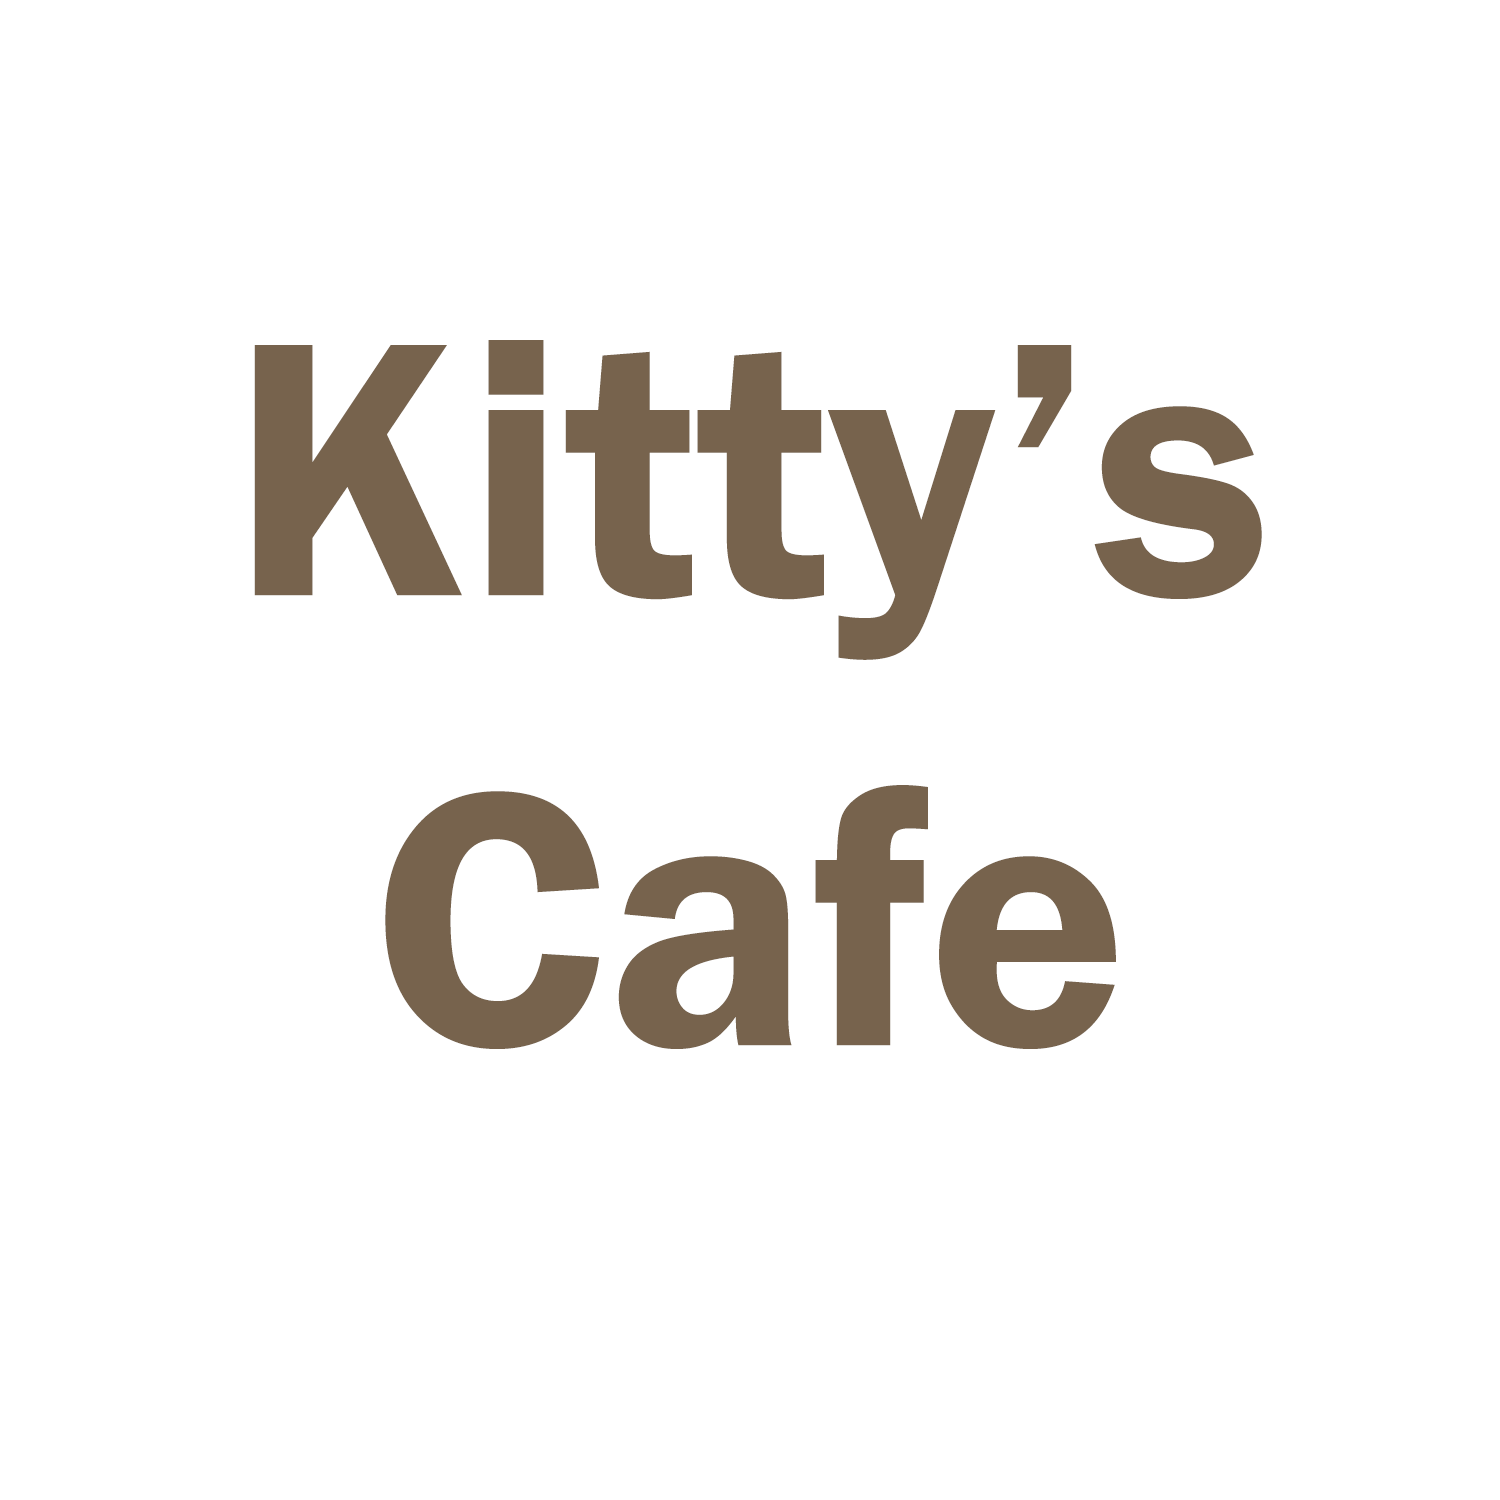 Kitty's Cafe